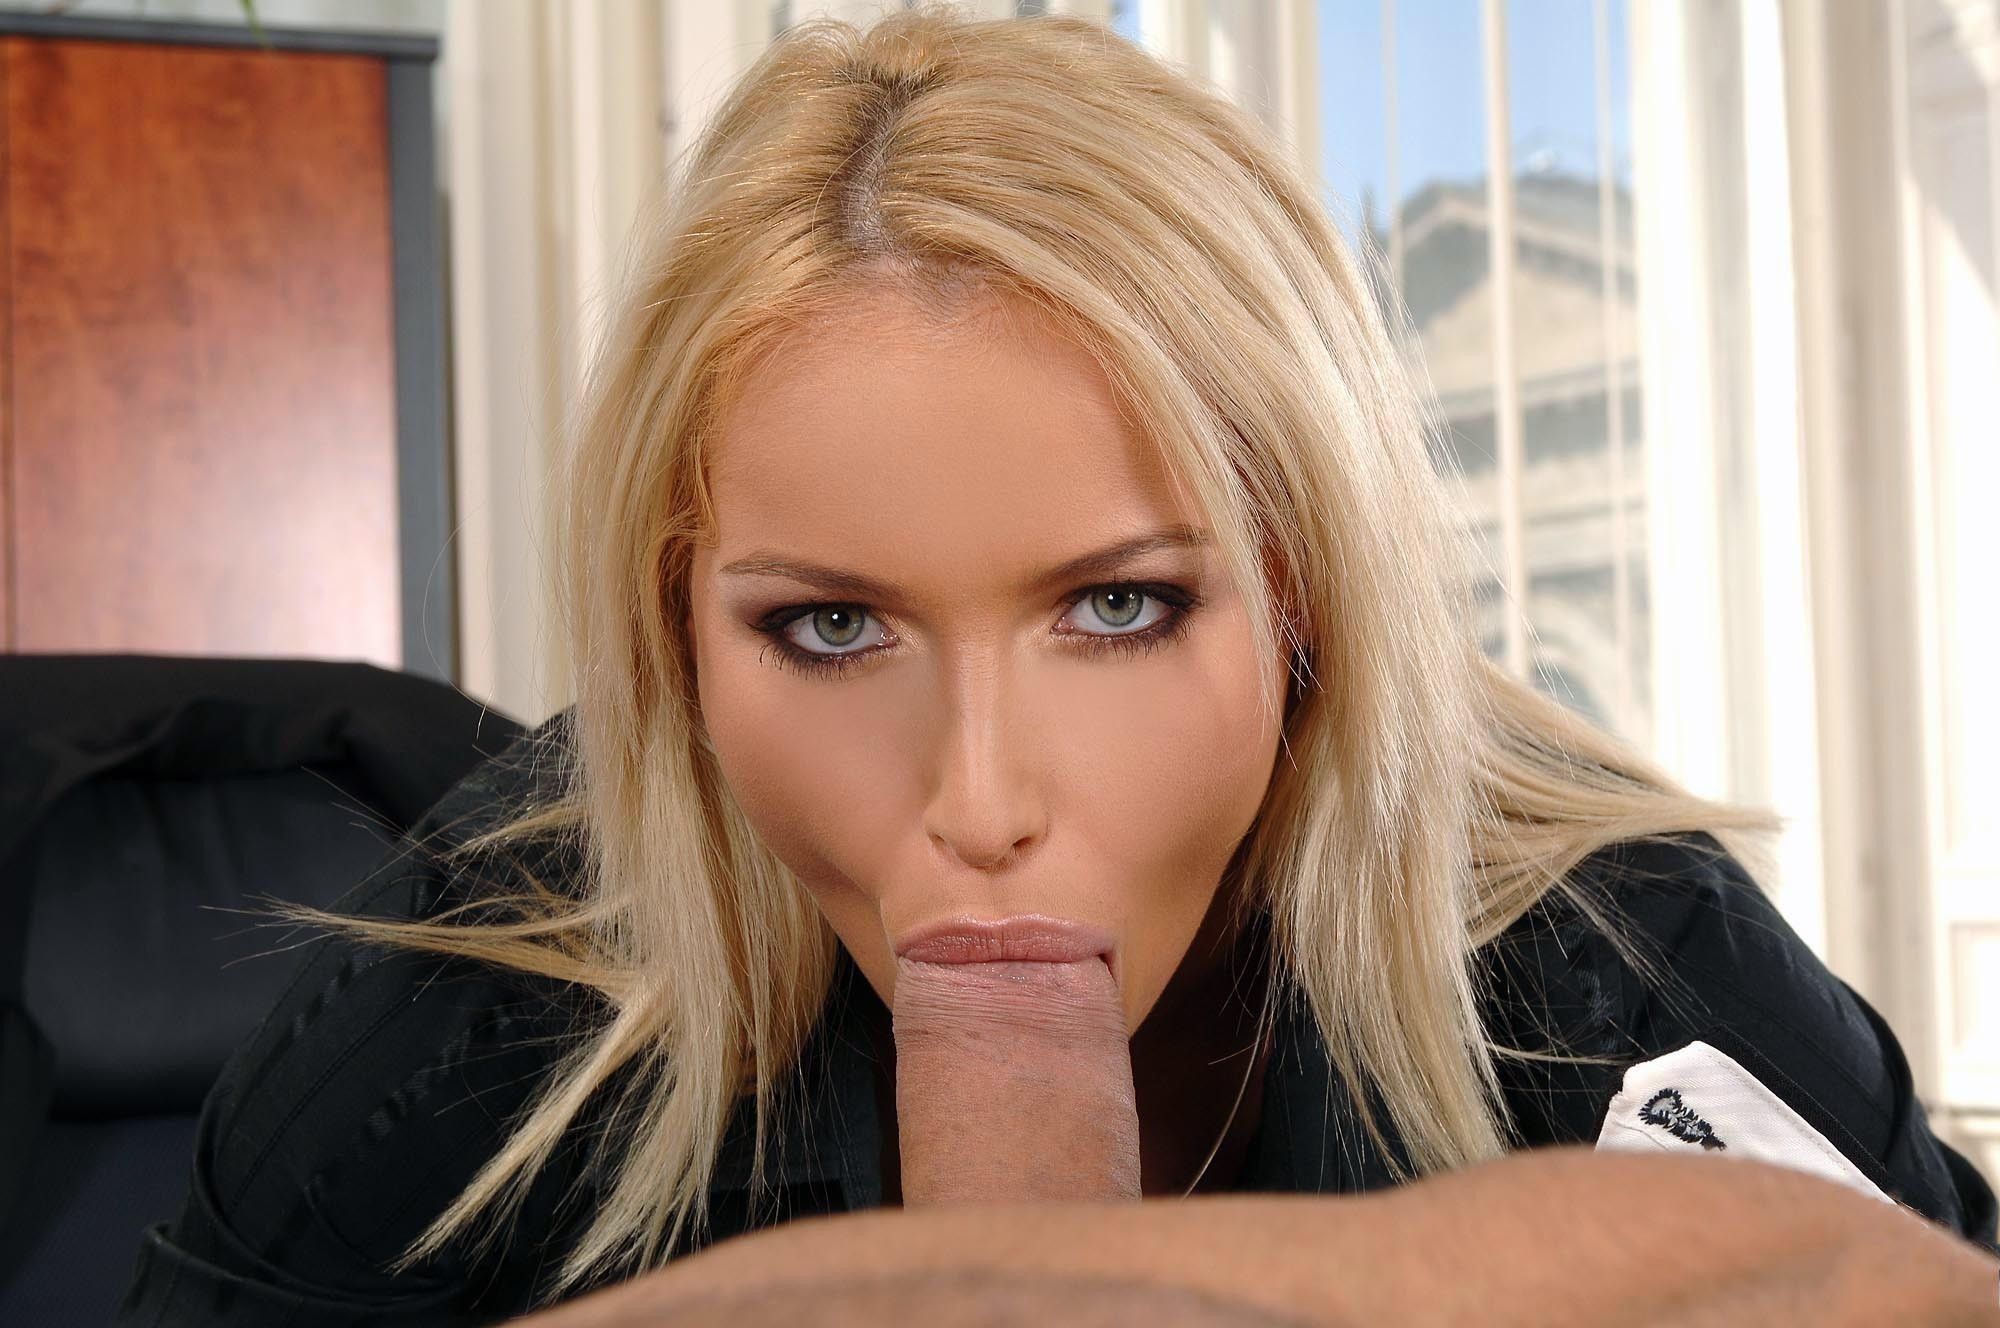 confirm. join told handjob blowjob cum in mouth swallow are not